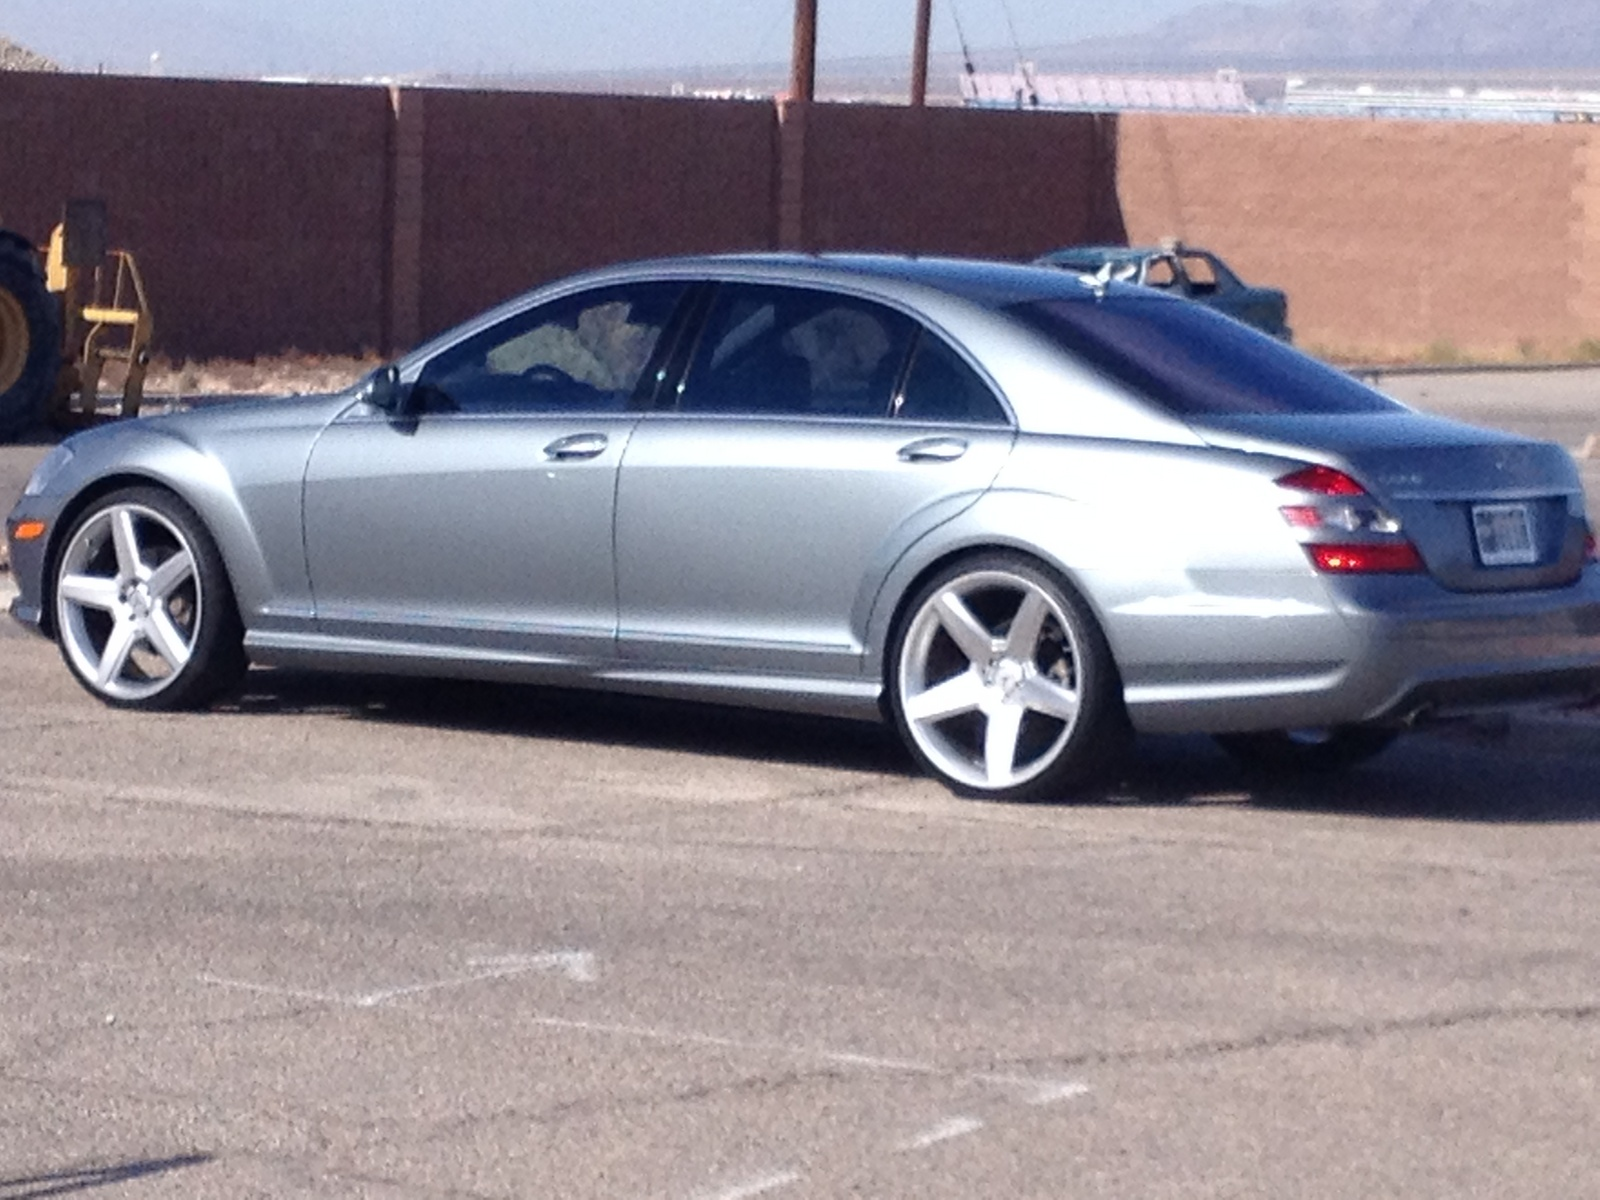 Mercedes benz s550 2008 review amazing pictures and for 2008 mercedes benz cls 550 reviews